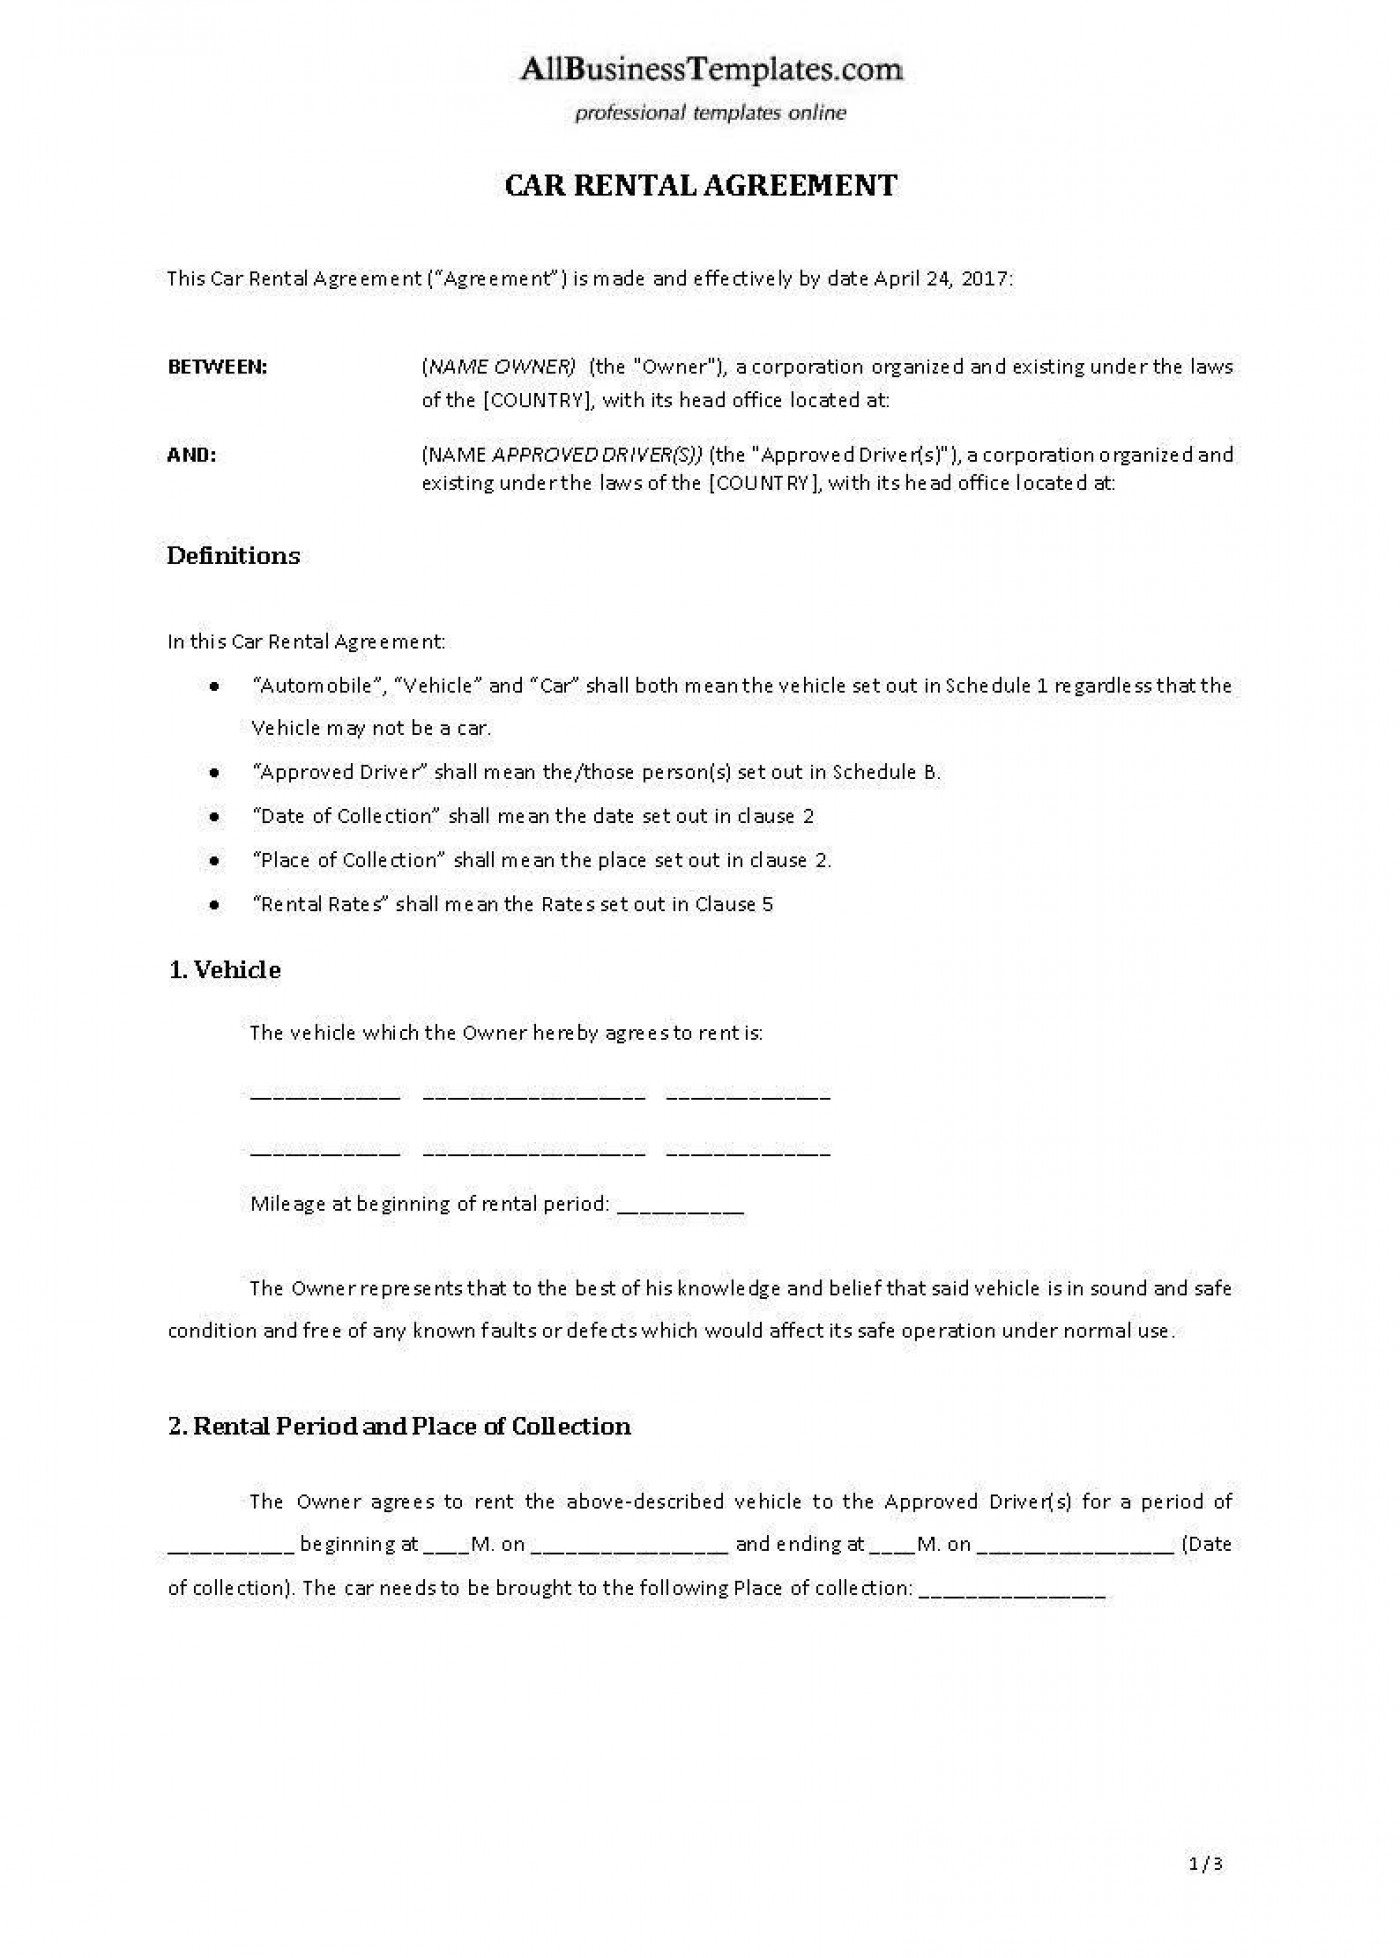 001 Surprising Template Car Rental Form Inspiration  Free Agreement Checklist Inspection1400